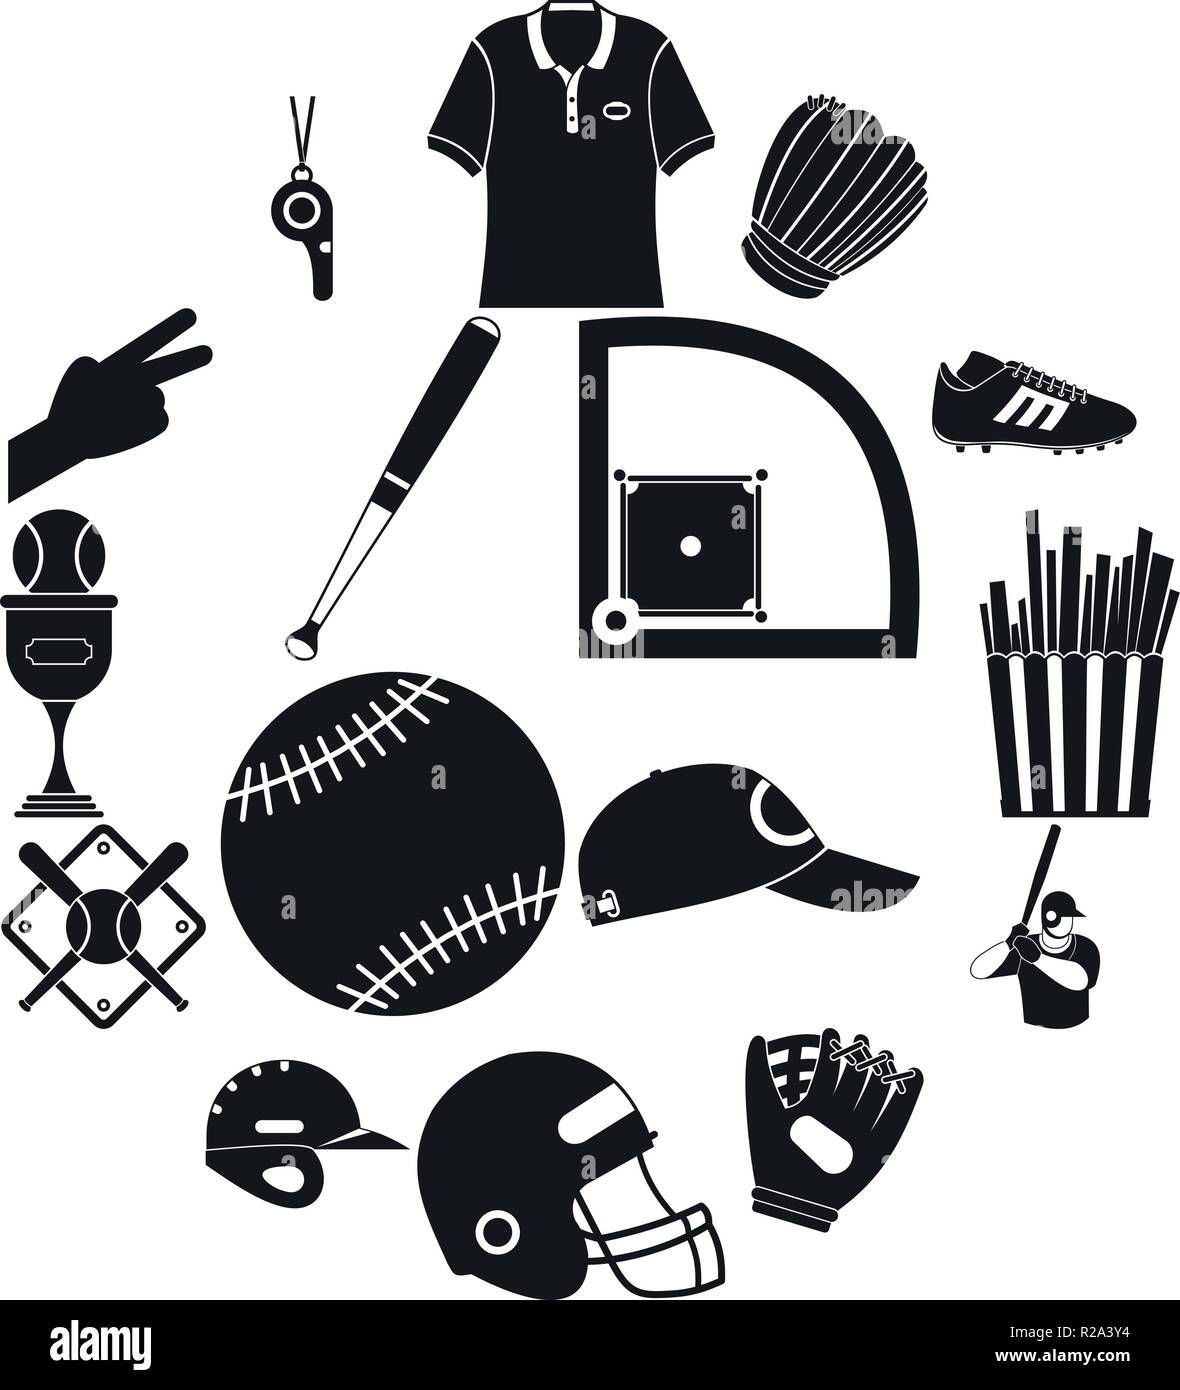 American football black simple icons for web and mobile devices - Stock Vector